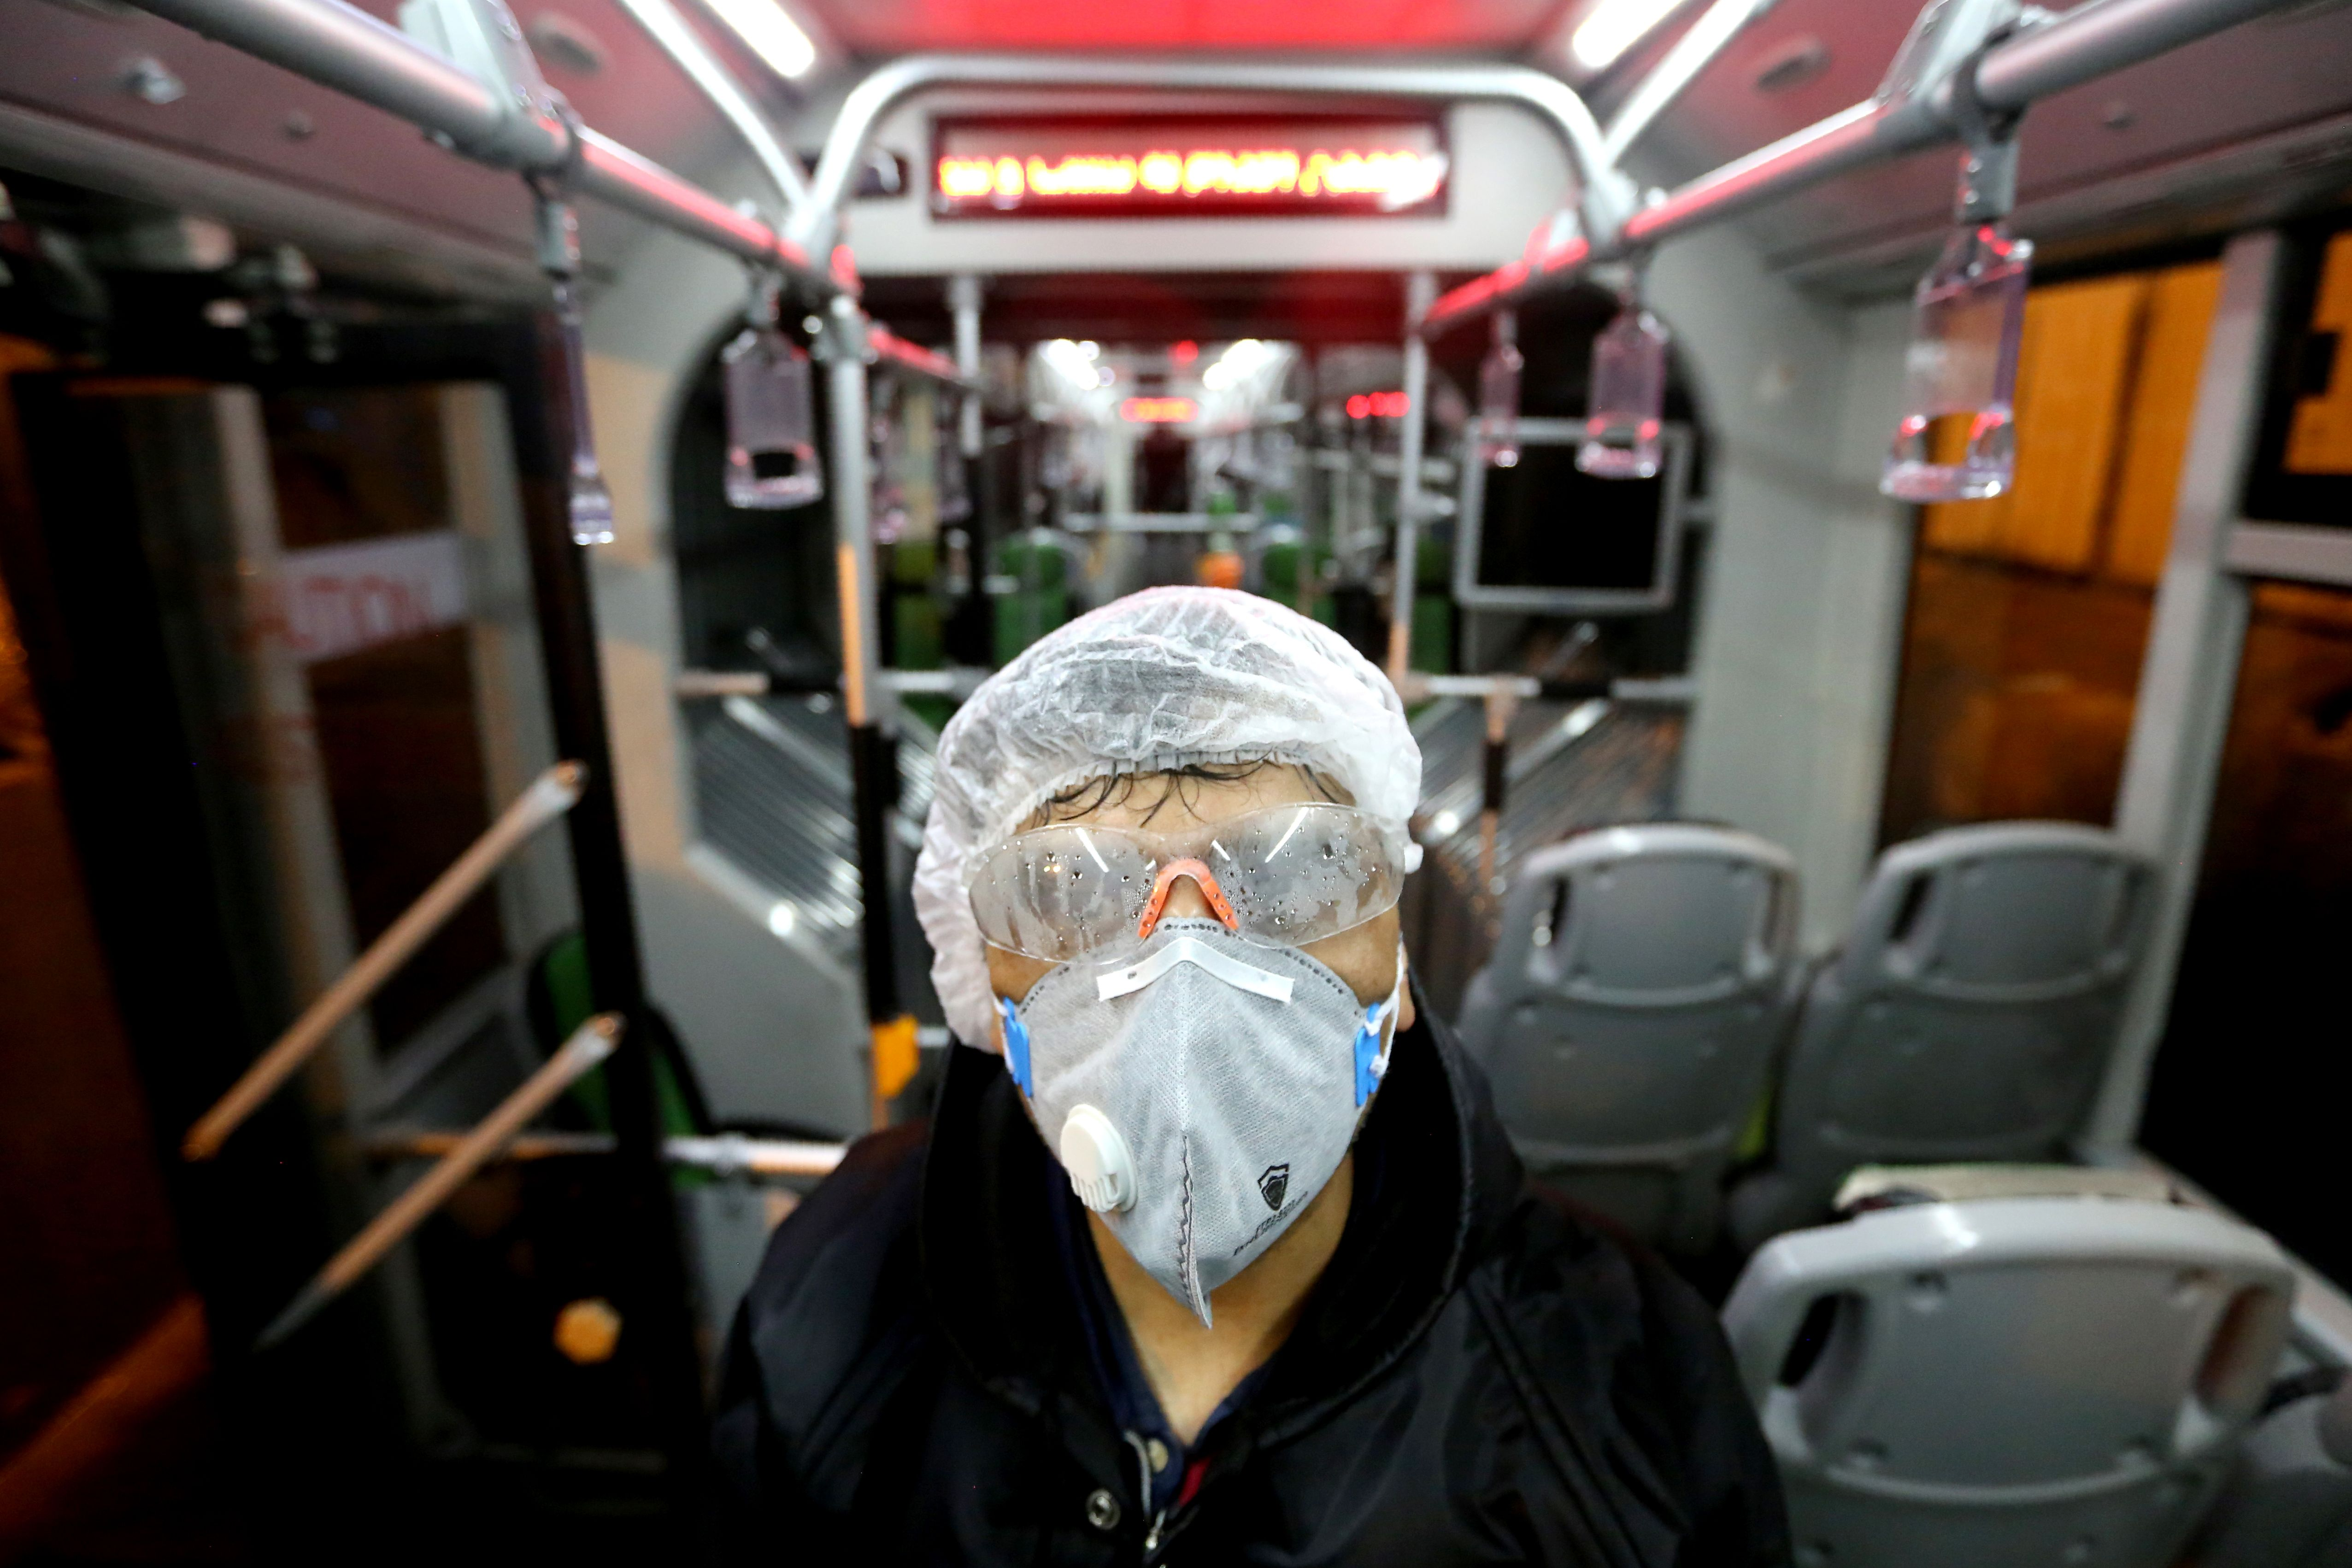 A Tehran Municipality worker cleans a bus to avoid the spread of the COVID-19 illness on (Photo by ATTA KENARE/AFP via Getty Images)